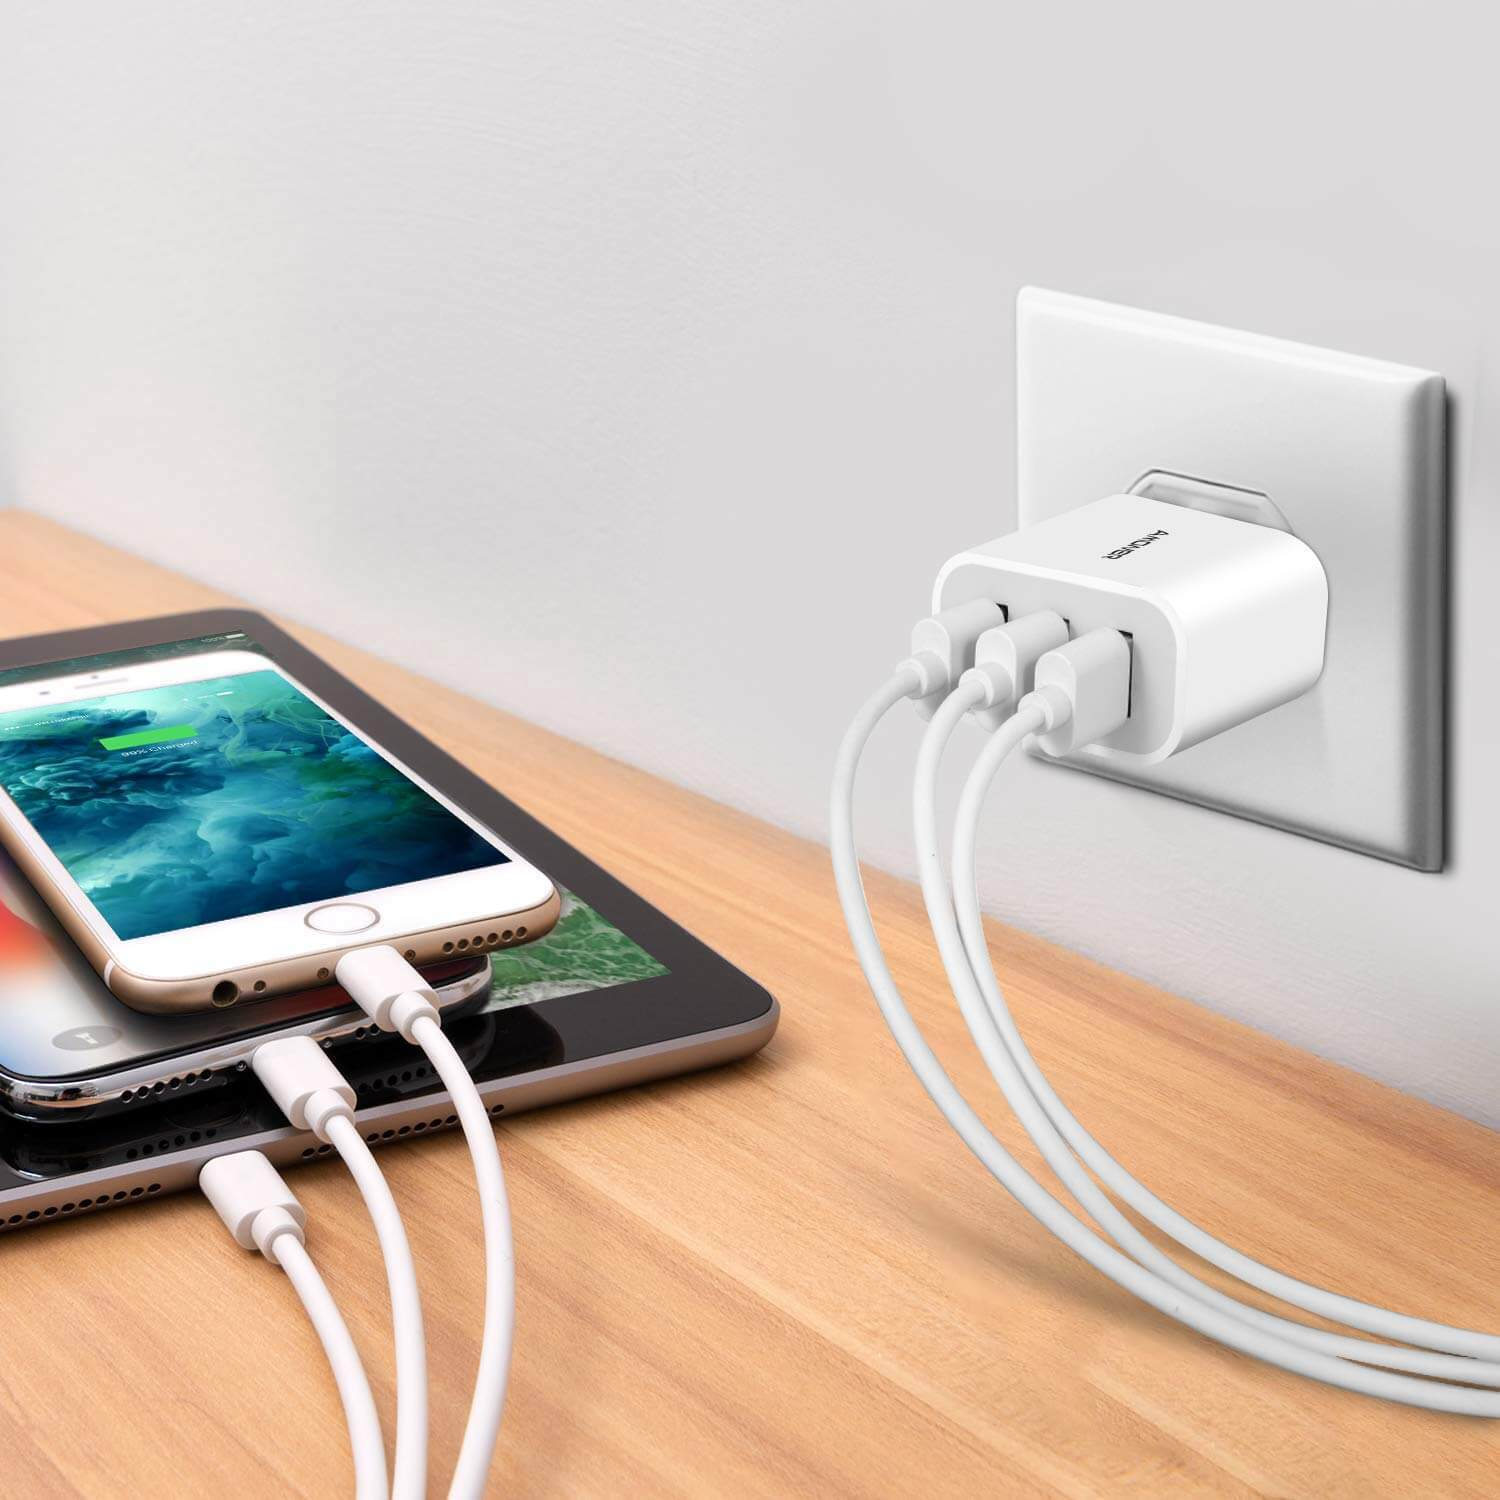 Multi-port charger - hostel gadget for convenience